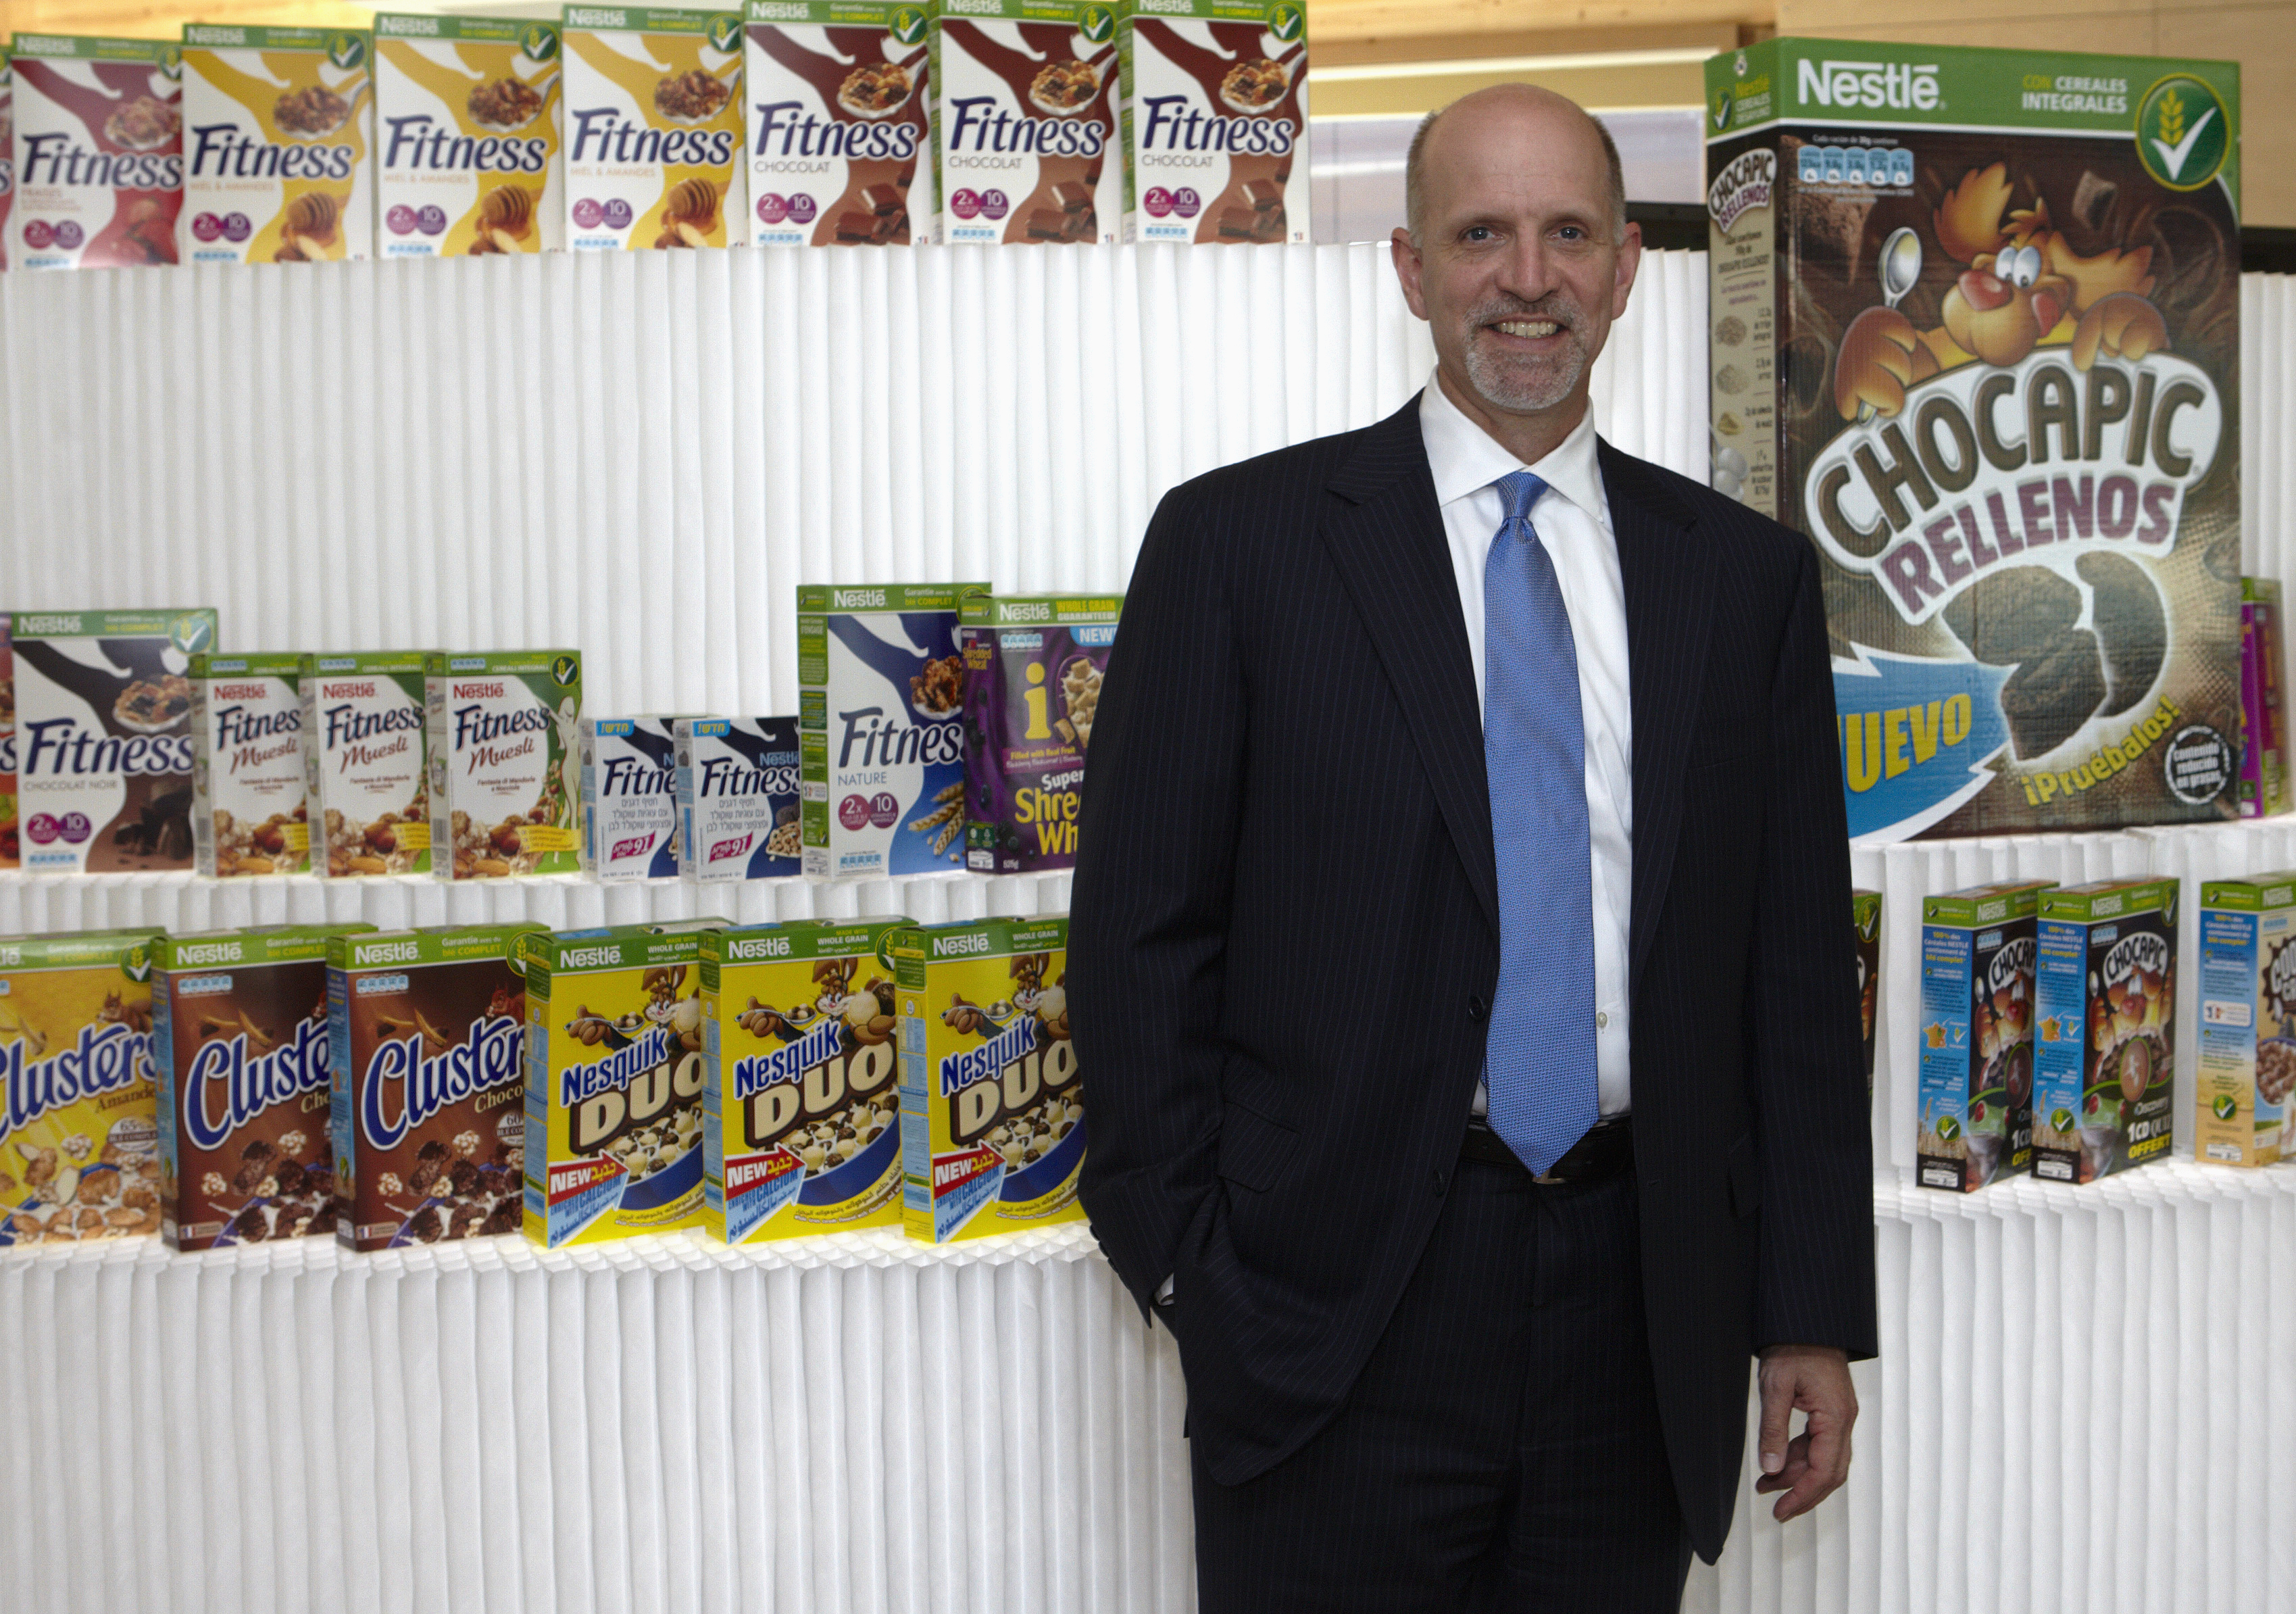 Jeff Harmening, President and CEO of Cereal Partners Worldwide (CPW), a General Mills' joint venture with Nestle, poses in front of products at the Innovation Center in Orbe